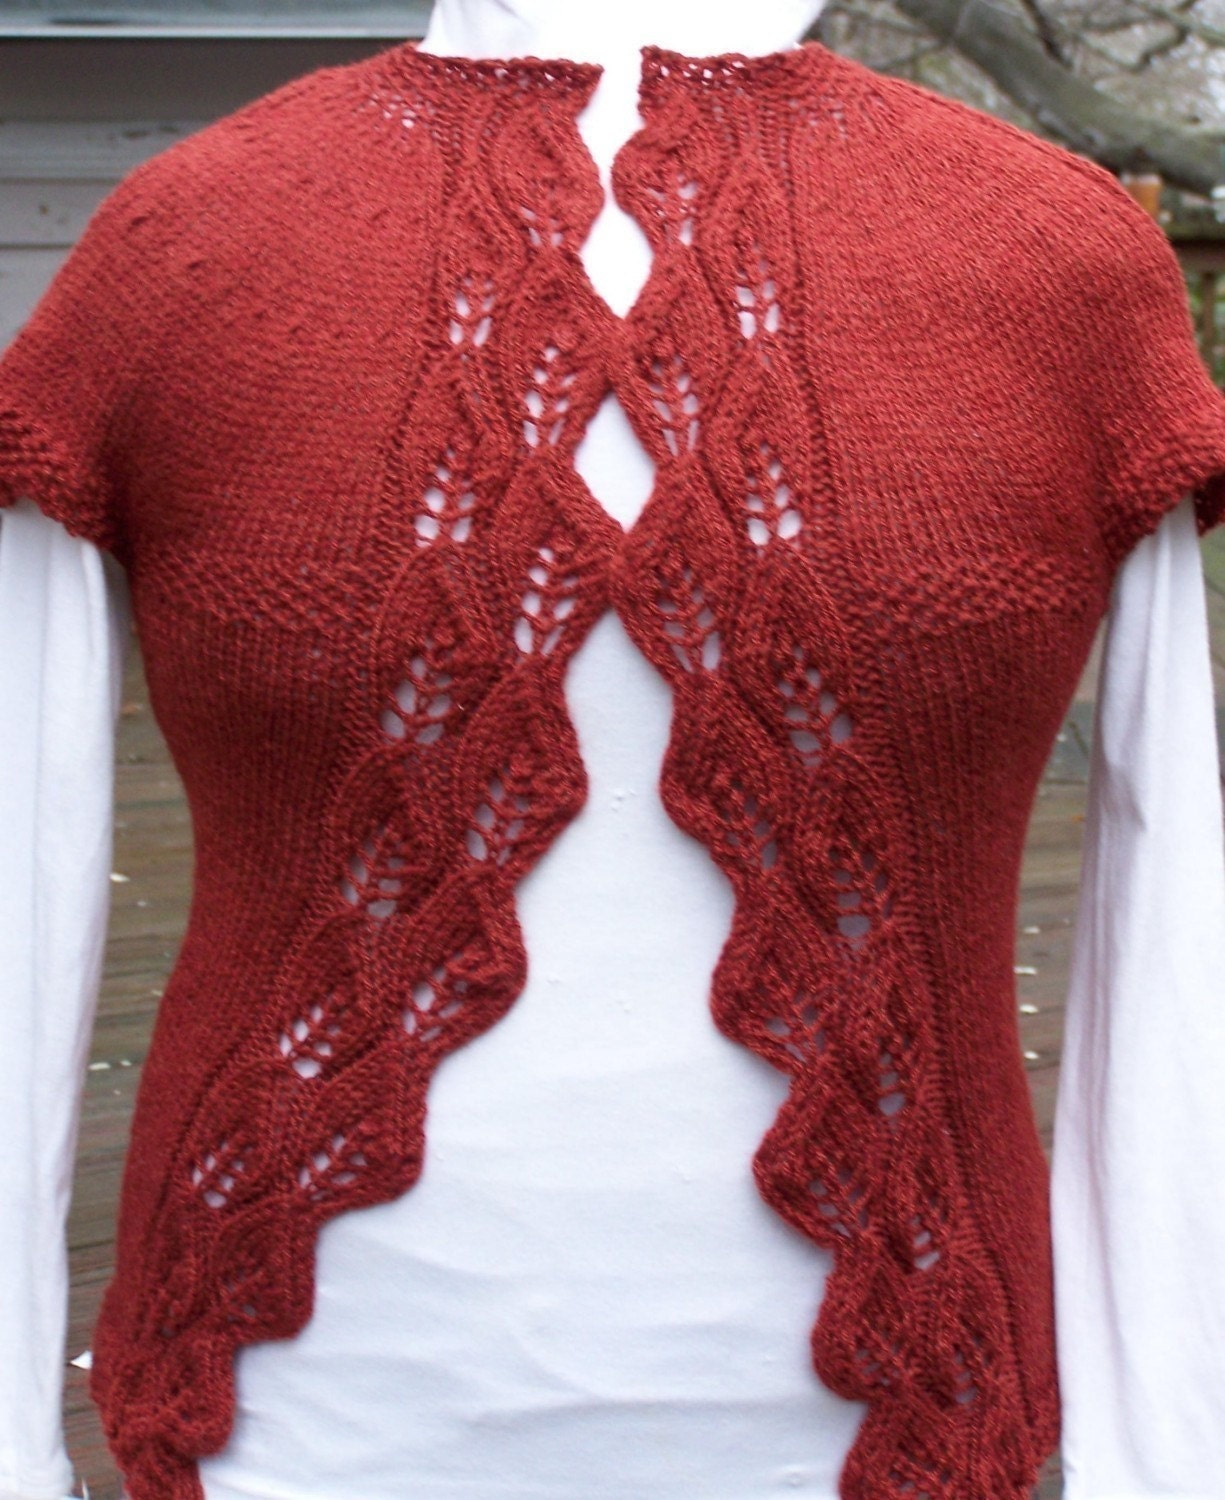 knitting pattern lace knit cardigan knit sweater by KnitChicGrace